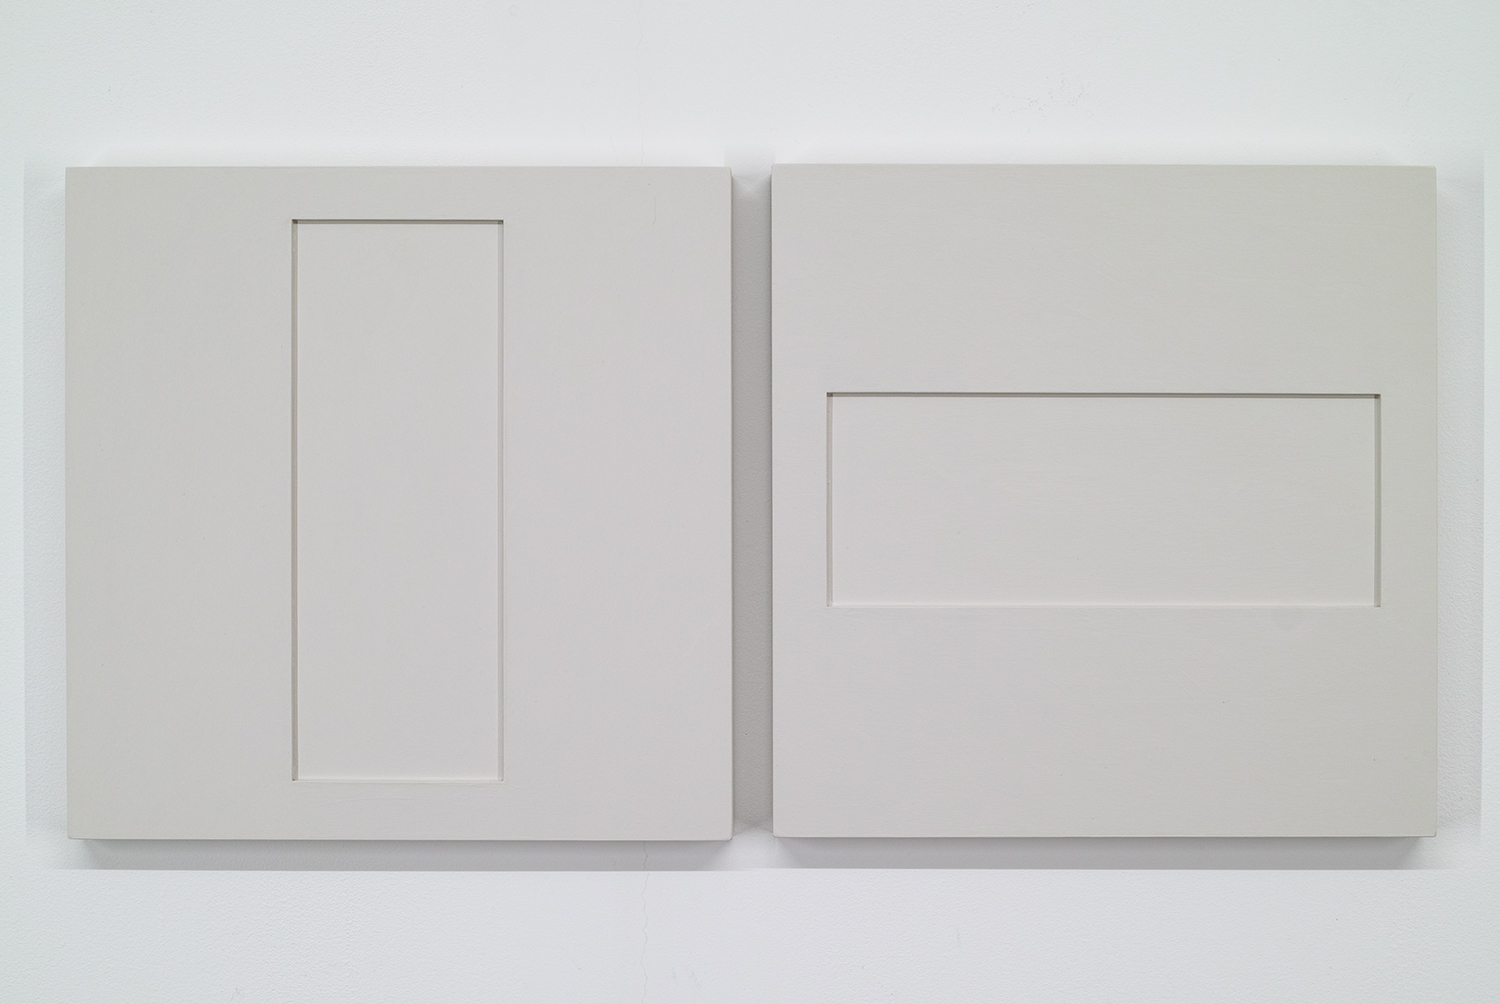 TS1714 A/B<br>Colour Gesso on Panel, 30 x 30 cm each (set of 2), 2017